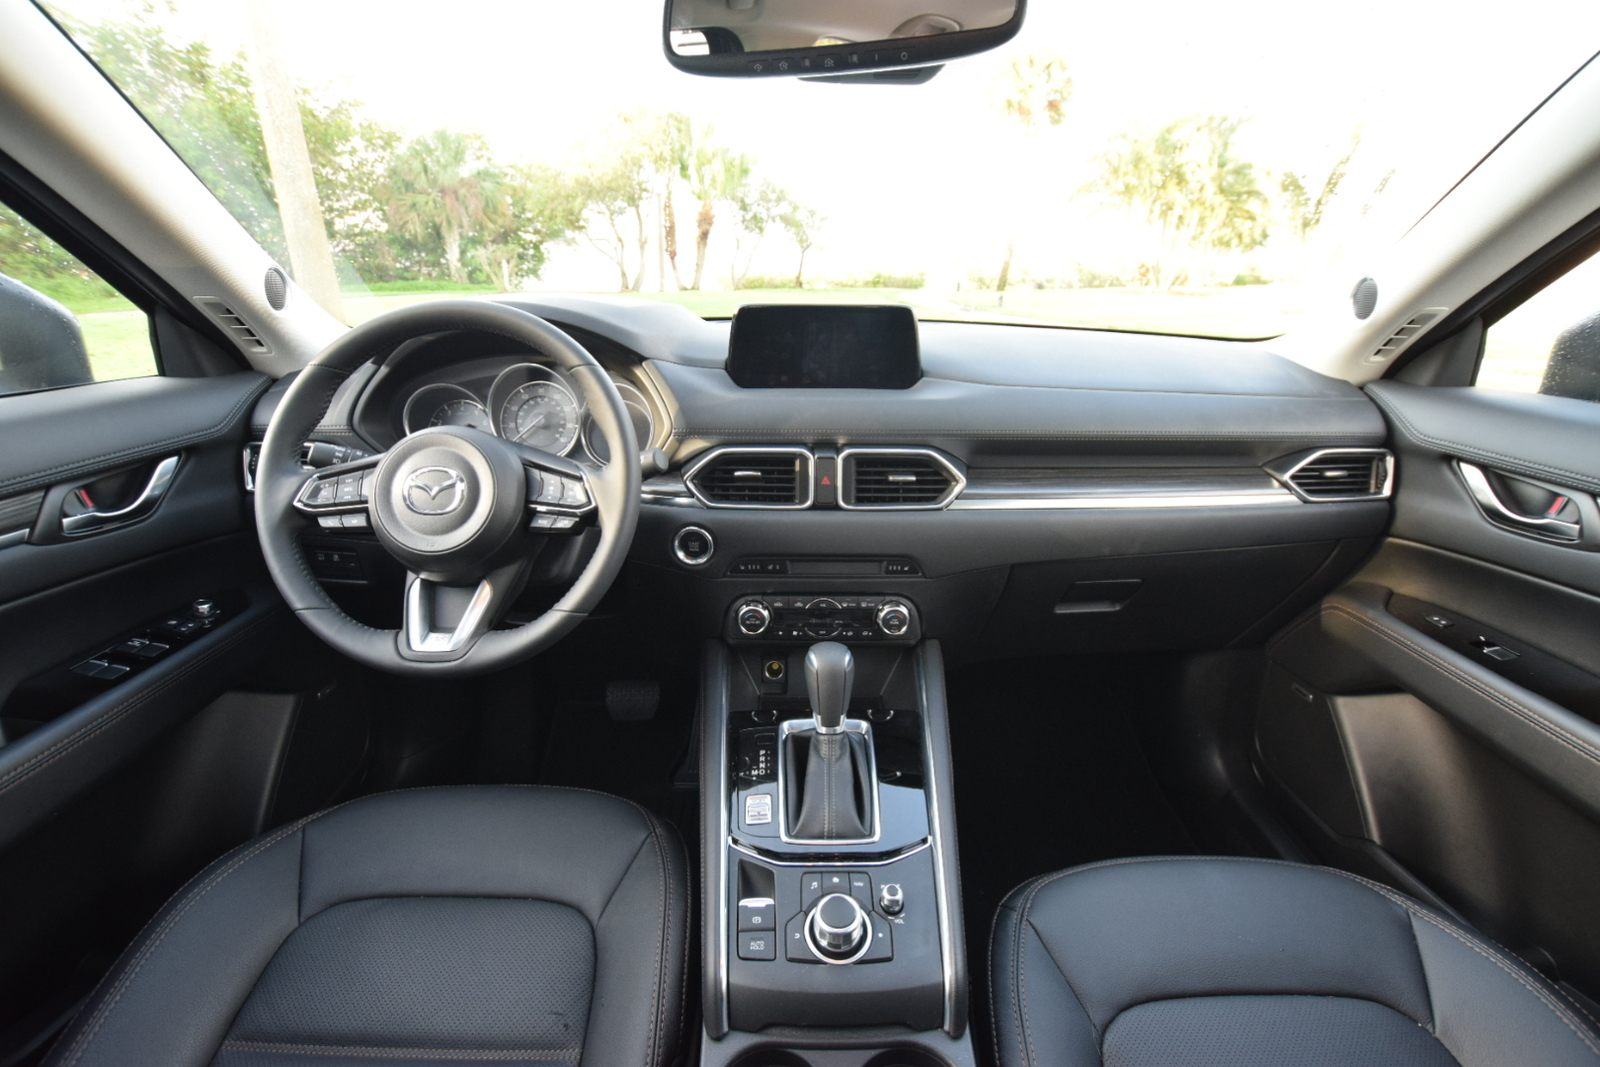 2017 Mazda CX-5 If It's Not Broke Make It Even Better Interior Center Console